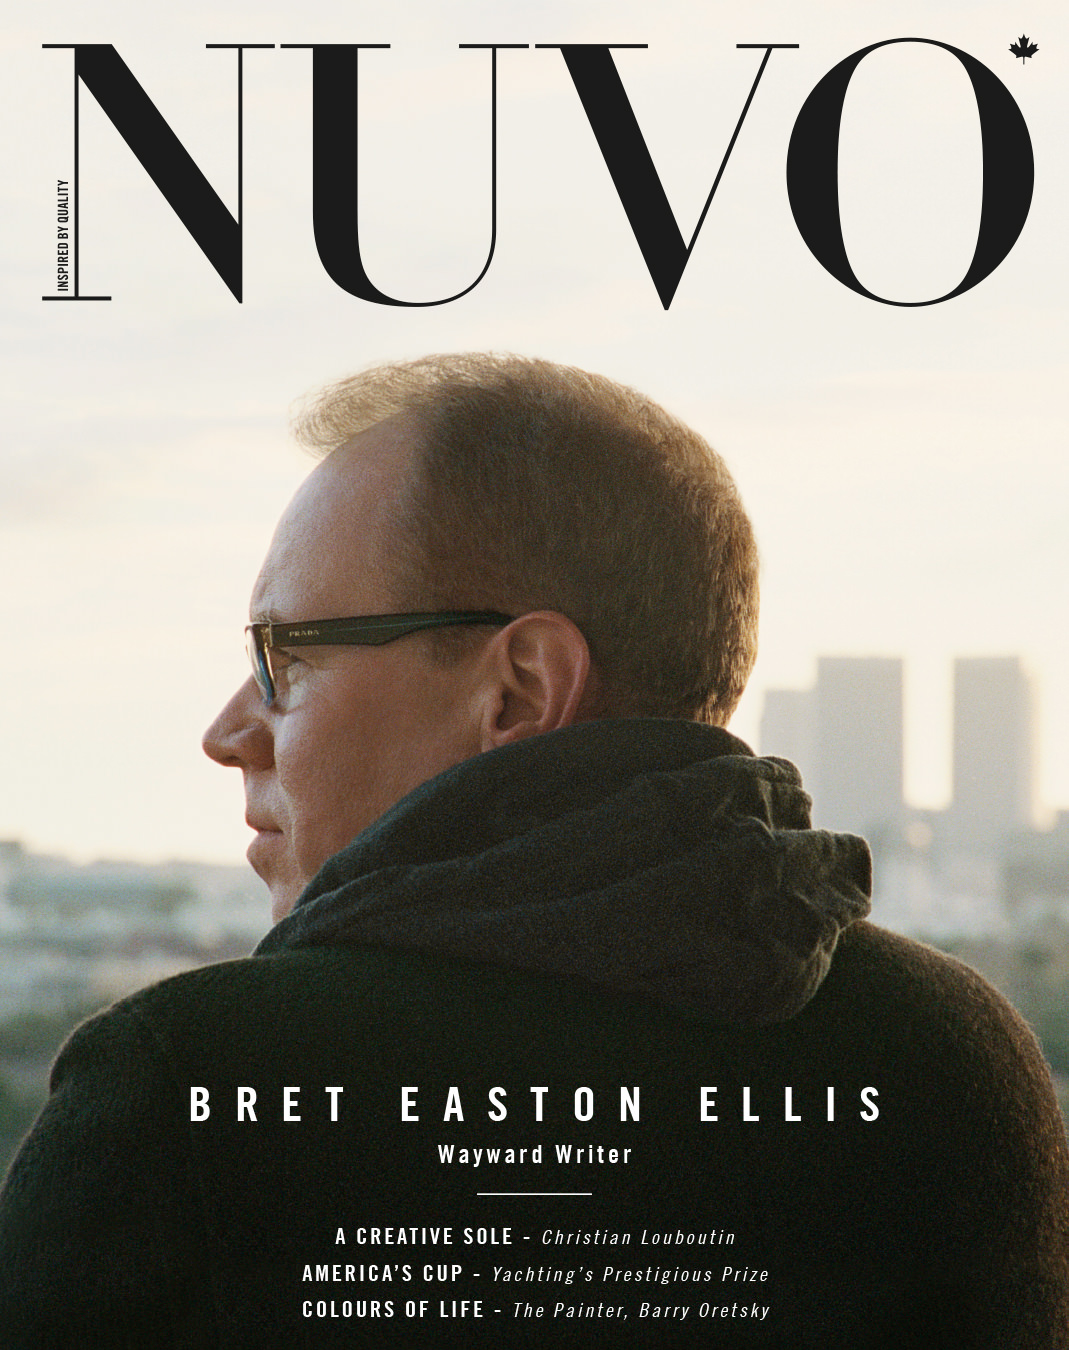 NUVO Magazine Summer 2013 Cover featuring Bret Easton Ellis